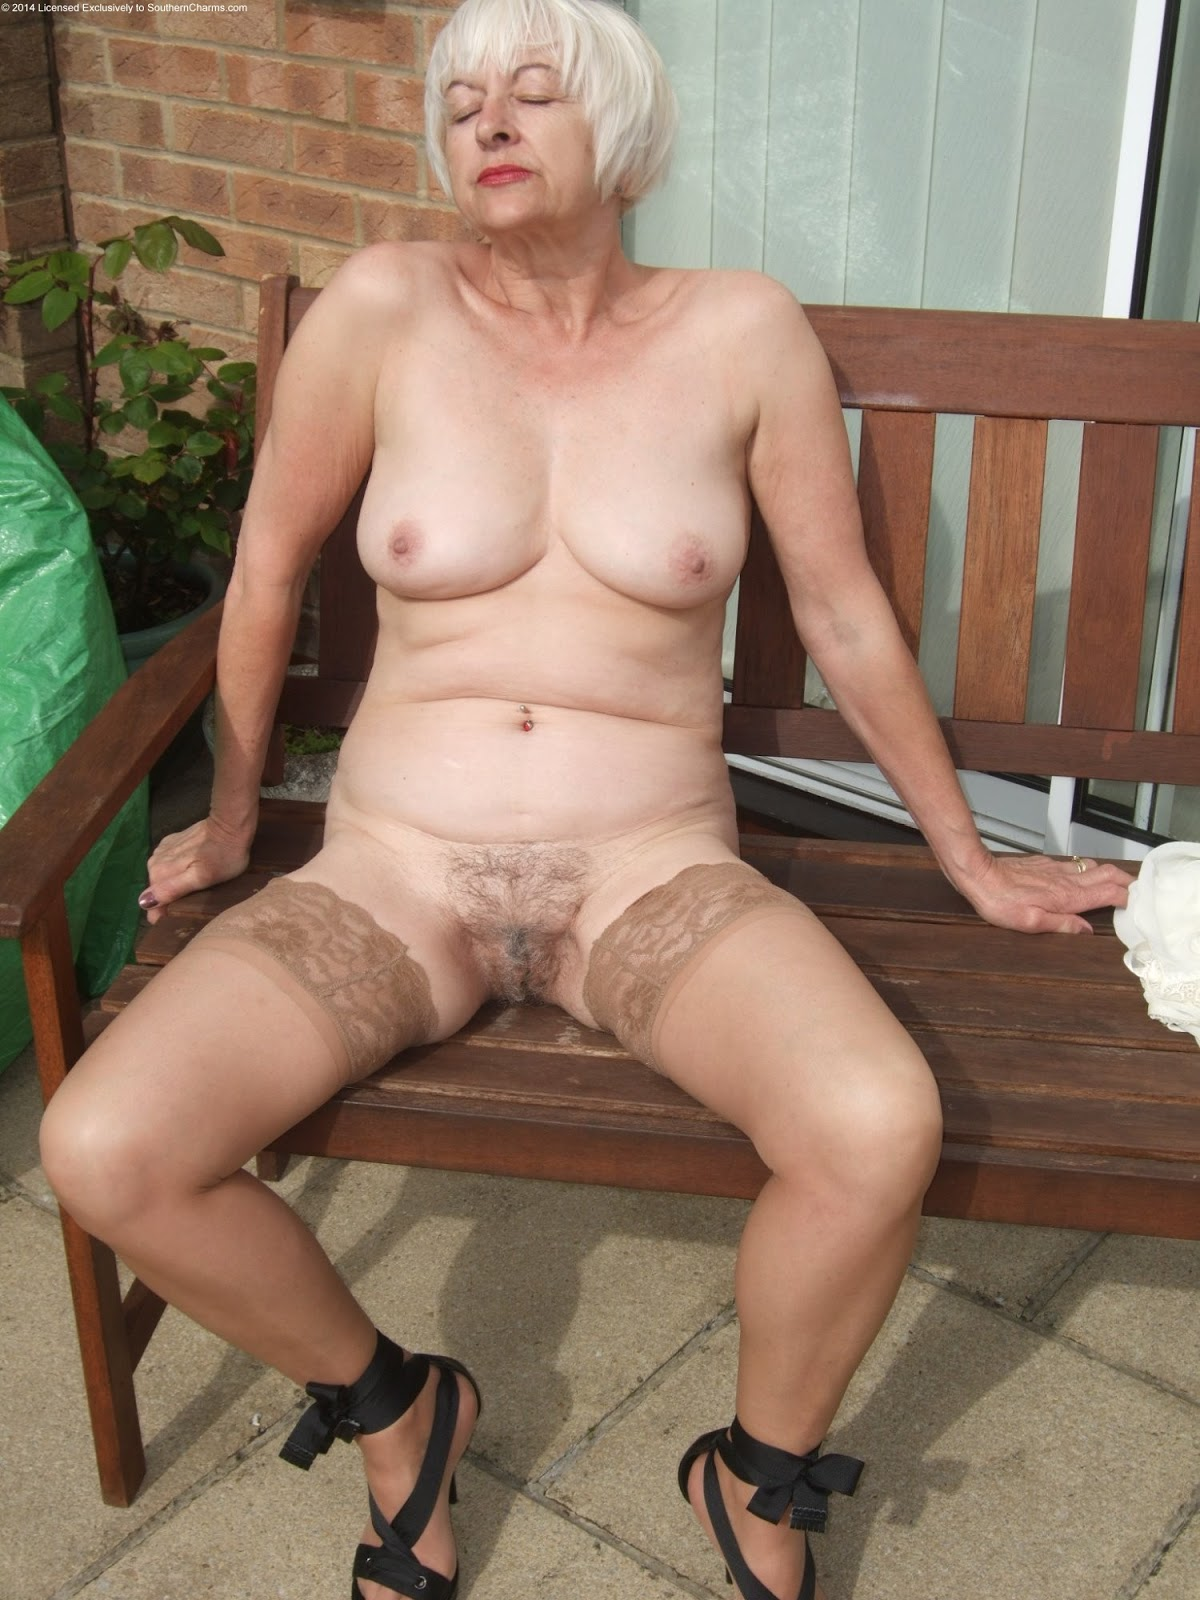 Archive Of Old Women Nude Old Lady Pictures-9517